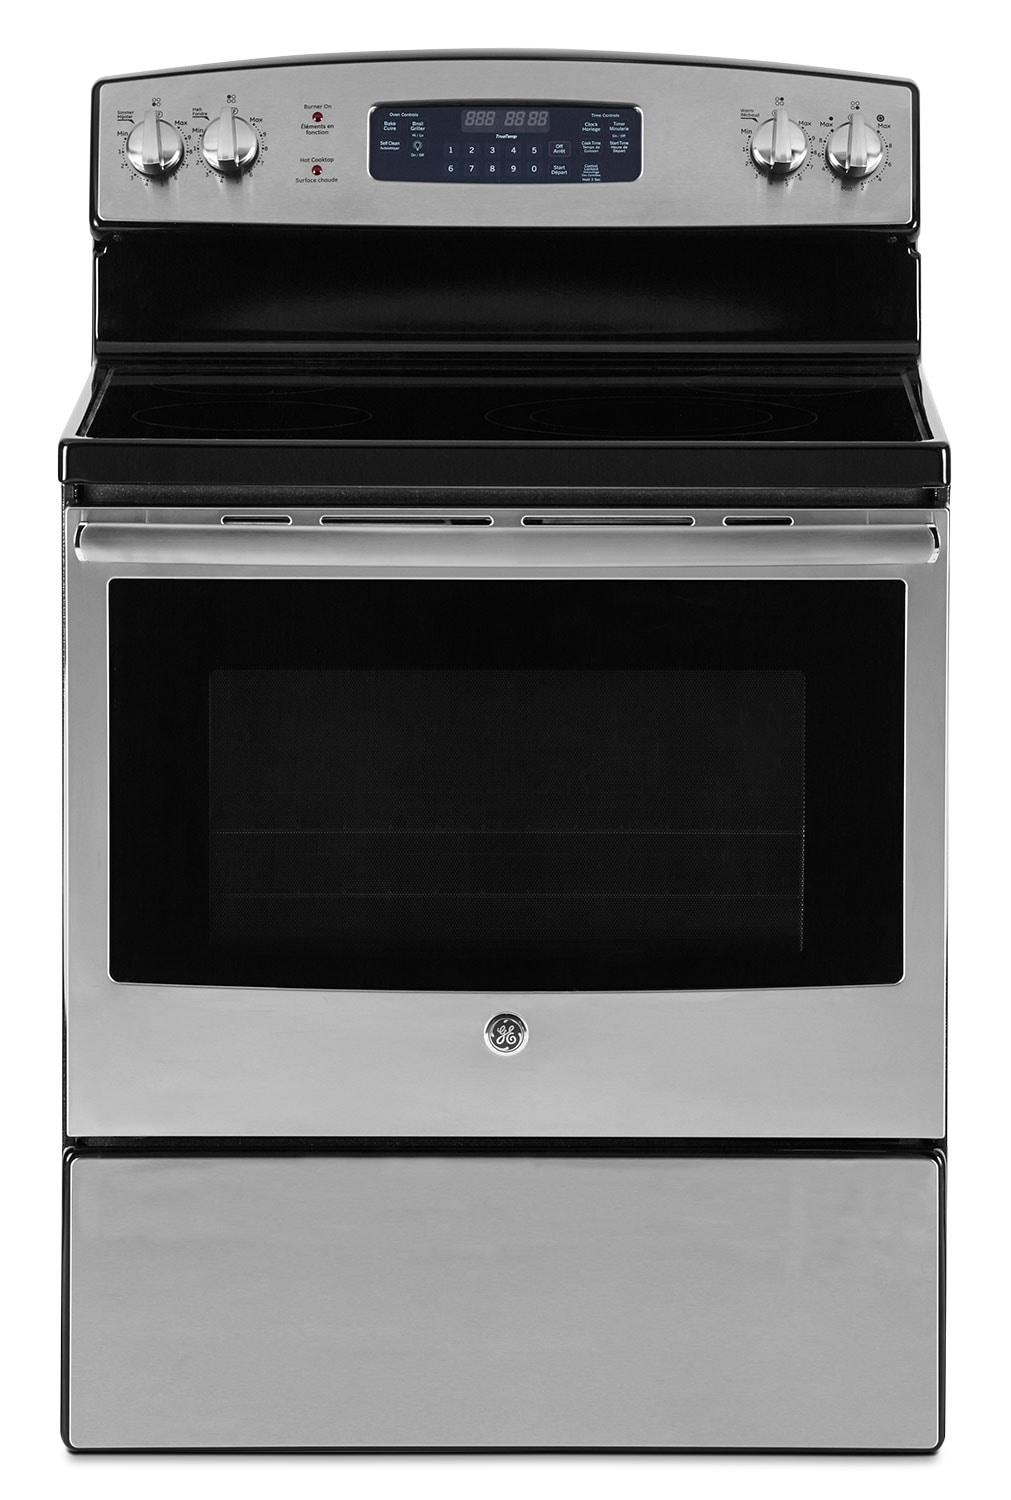 Cooking Products - GE 5.0 Cu. Ft. Freestanding Electric Range – JCB730SJSS